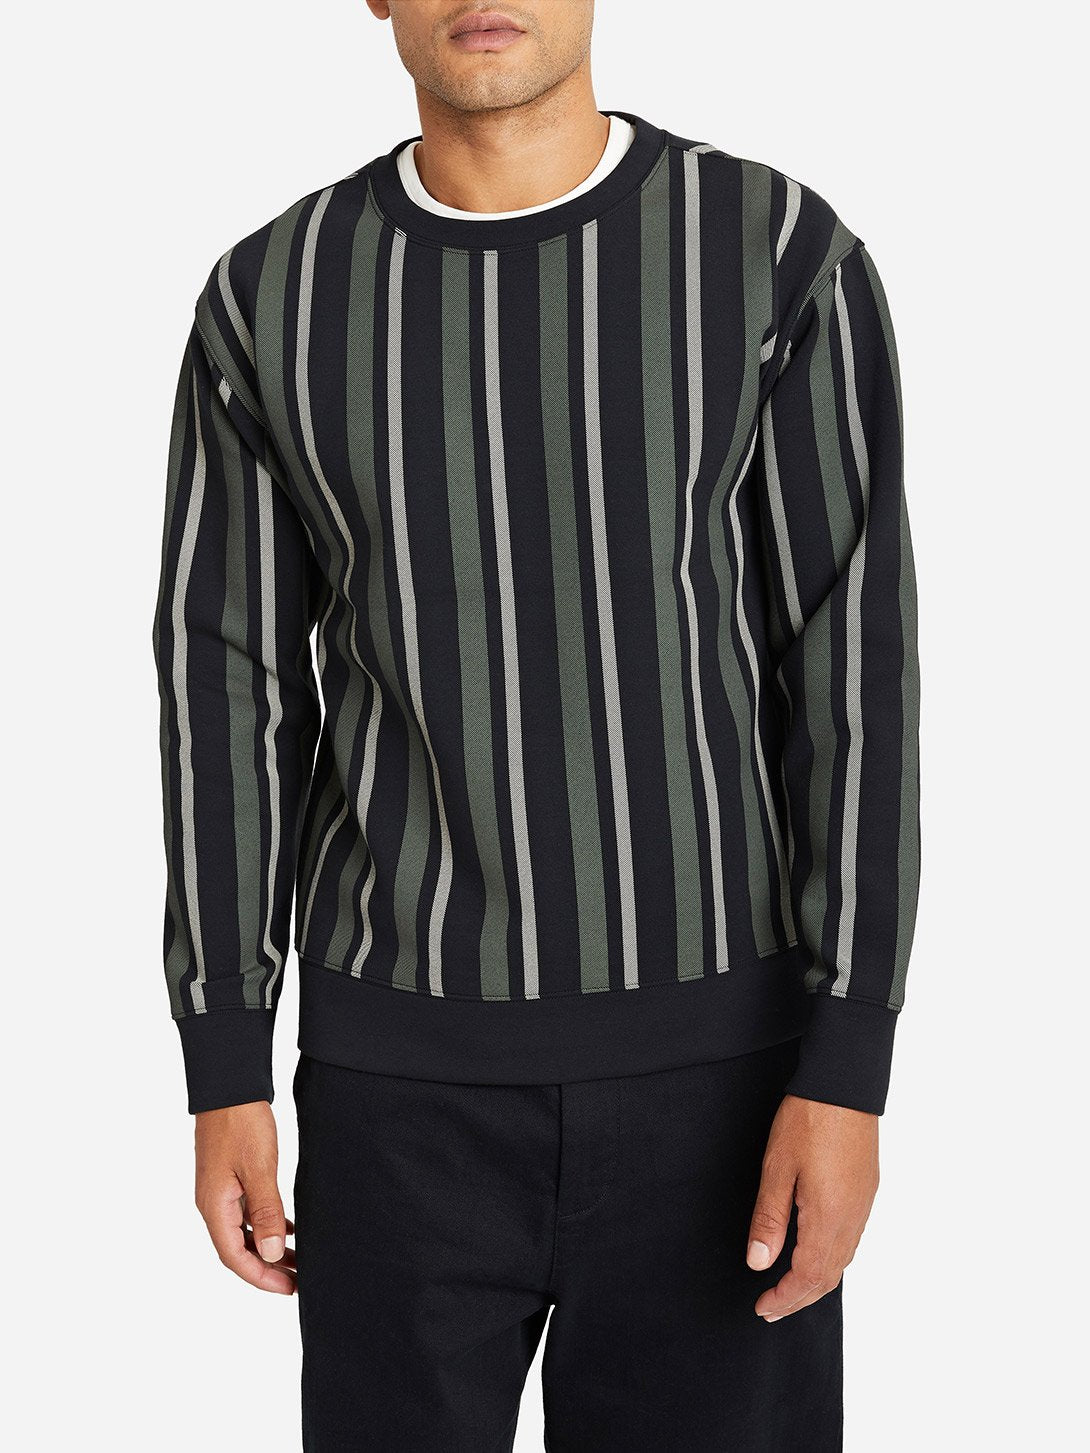 GREEN STRIPE mens long sleeve t shirts angelo crew ons clothing